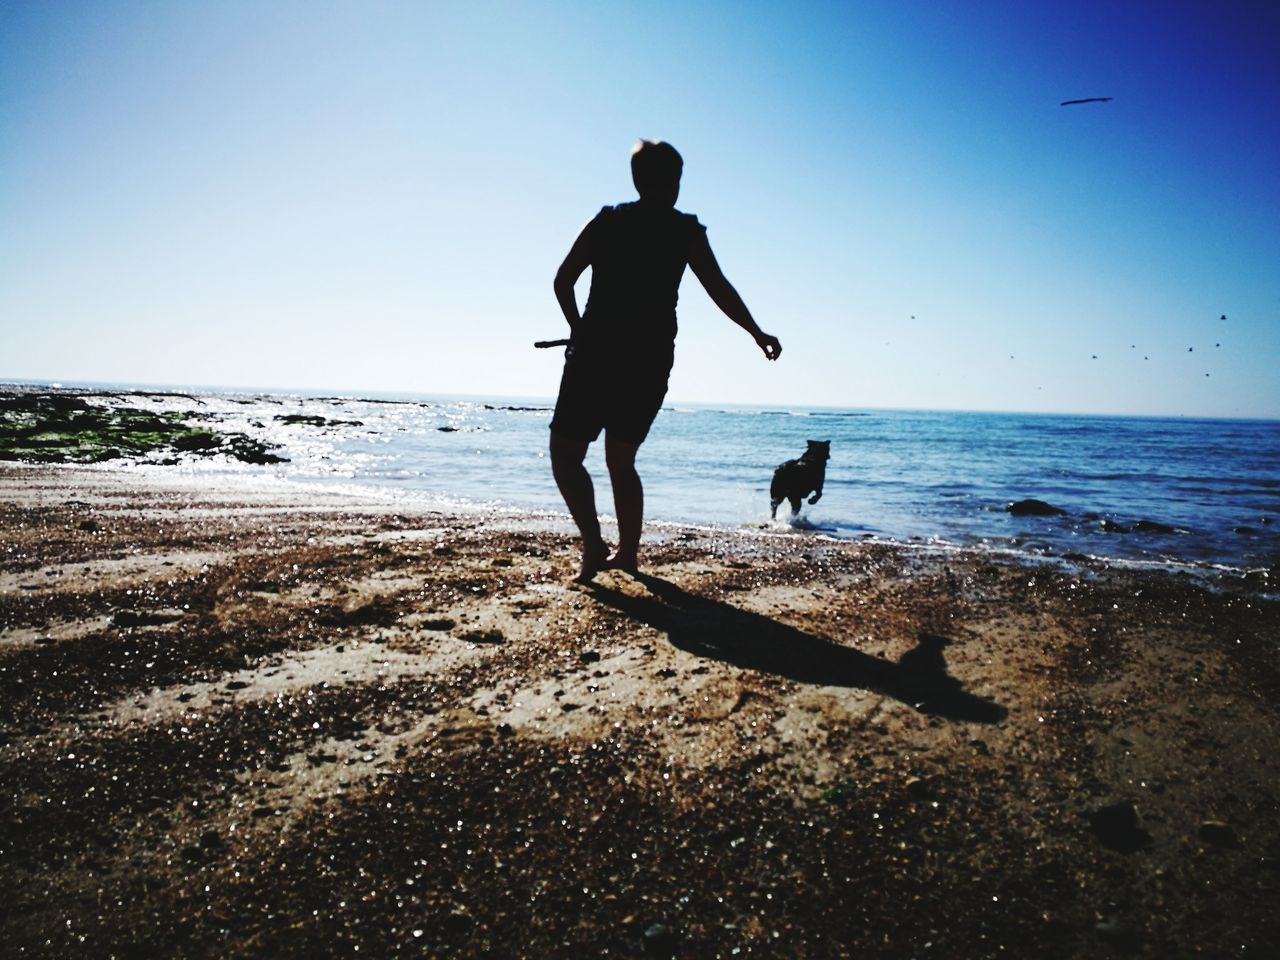 sea, beach, horizon over water, water, full length, nature, shore, silhouette, sky, sand, wave, real people, outdoors, beauty in nature, men, leisure activity, scenics, sunlight, one animal, vacations, day, tranquil scene, one person, pets, standing, tranquility, lifestyles, clear sky, mammal, people